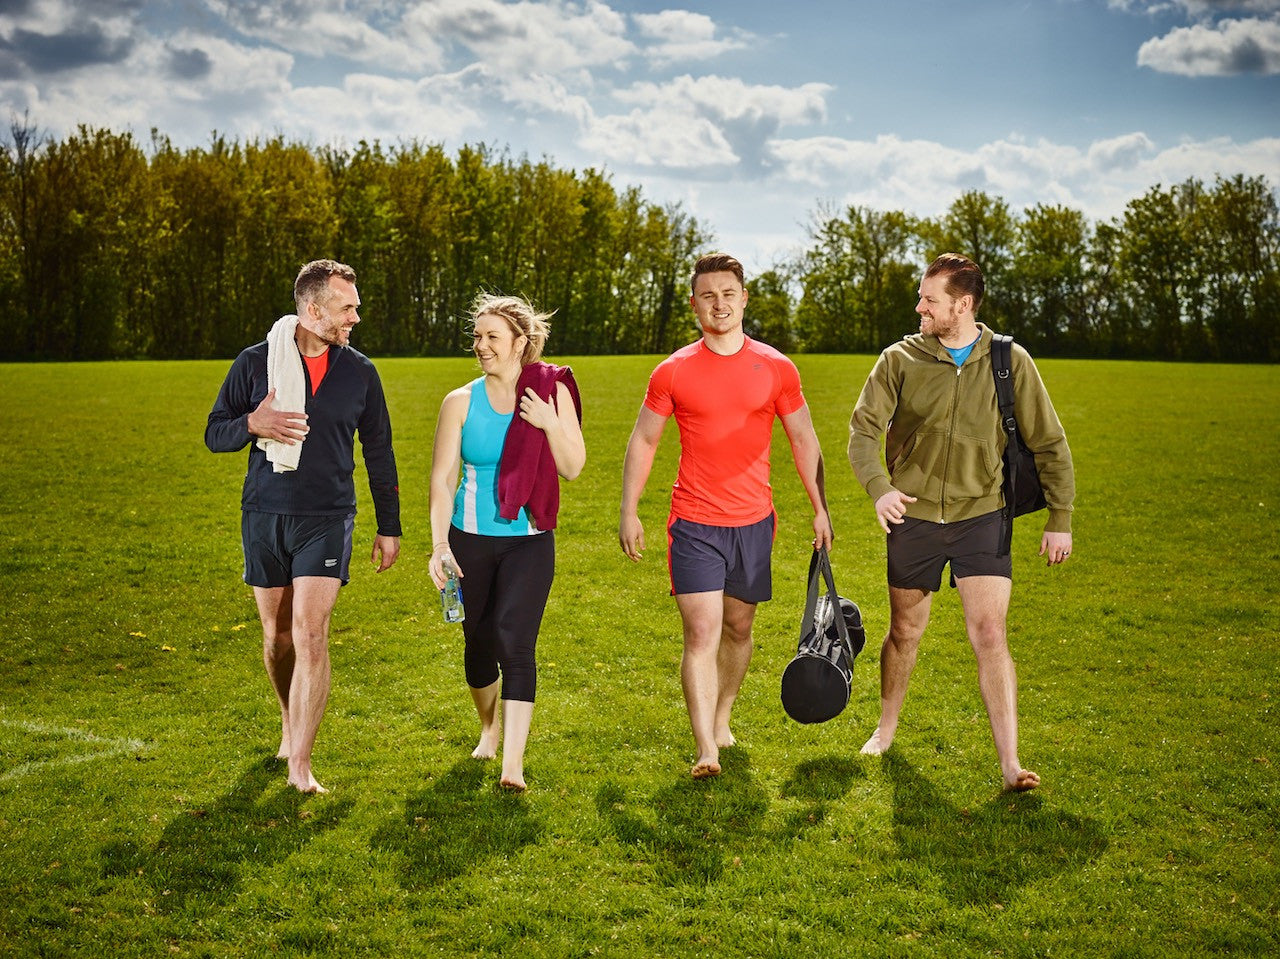 Athletes walking across grass outdoor workout smiling happy